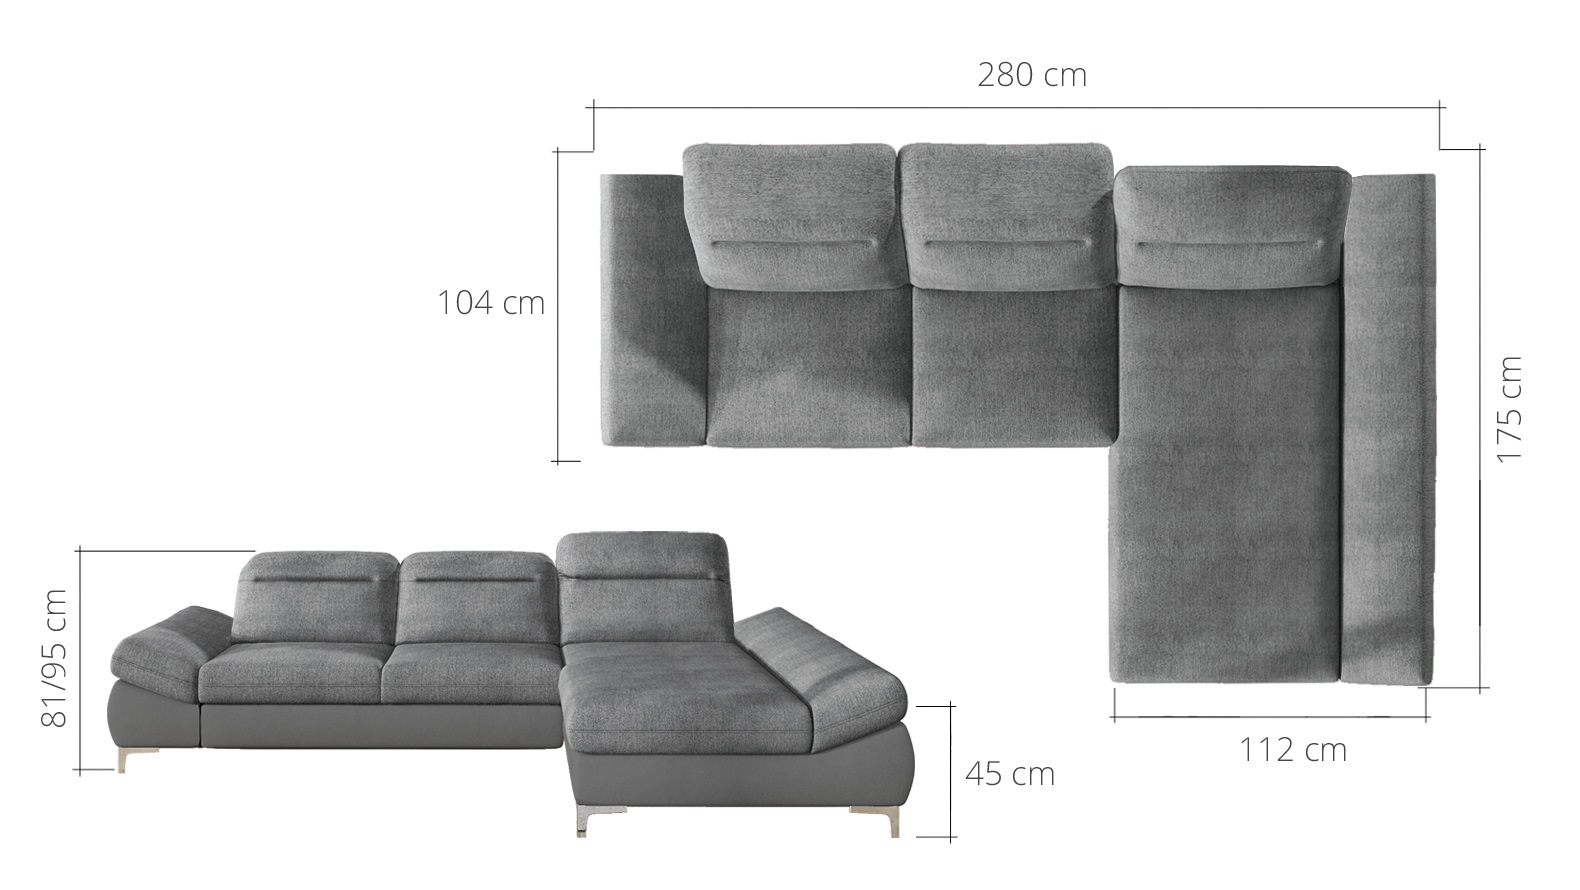 Pleasant Eckcouch Eckcouch Sofa Mini Bettkasten Couch Sofas Mit Tomy Andrewgaddart Wooden Chair Designs For Living Room Andrewgaddartcom